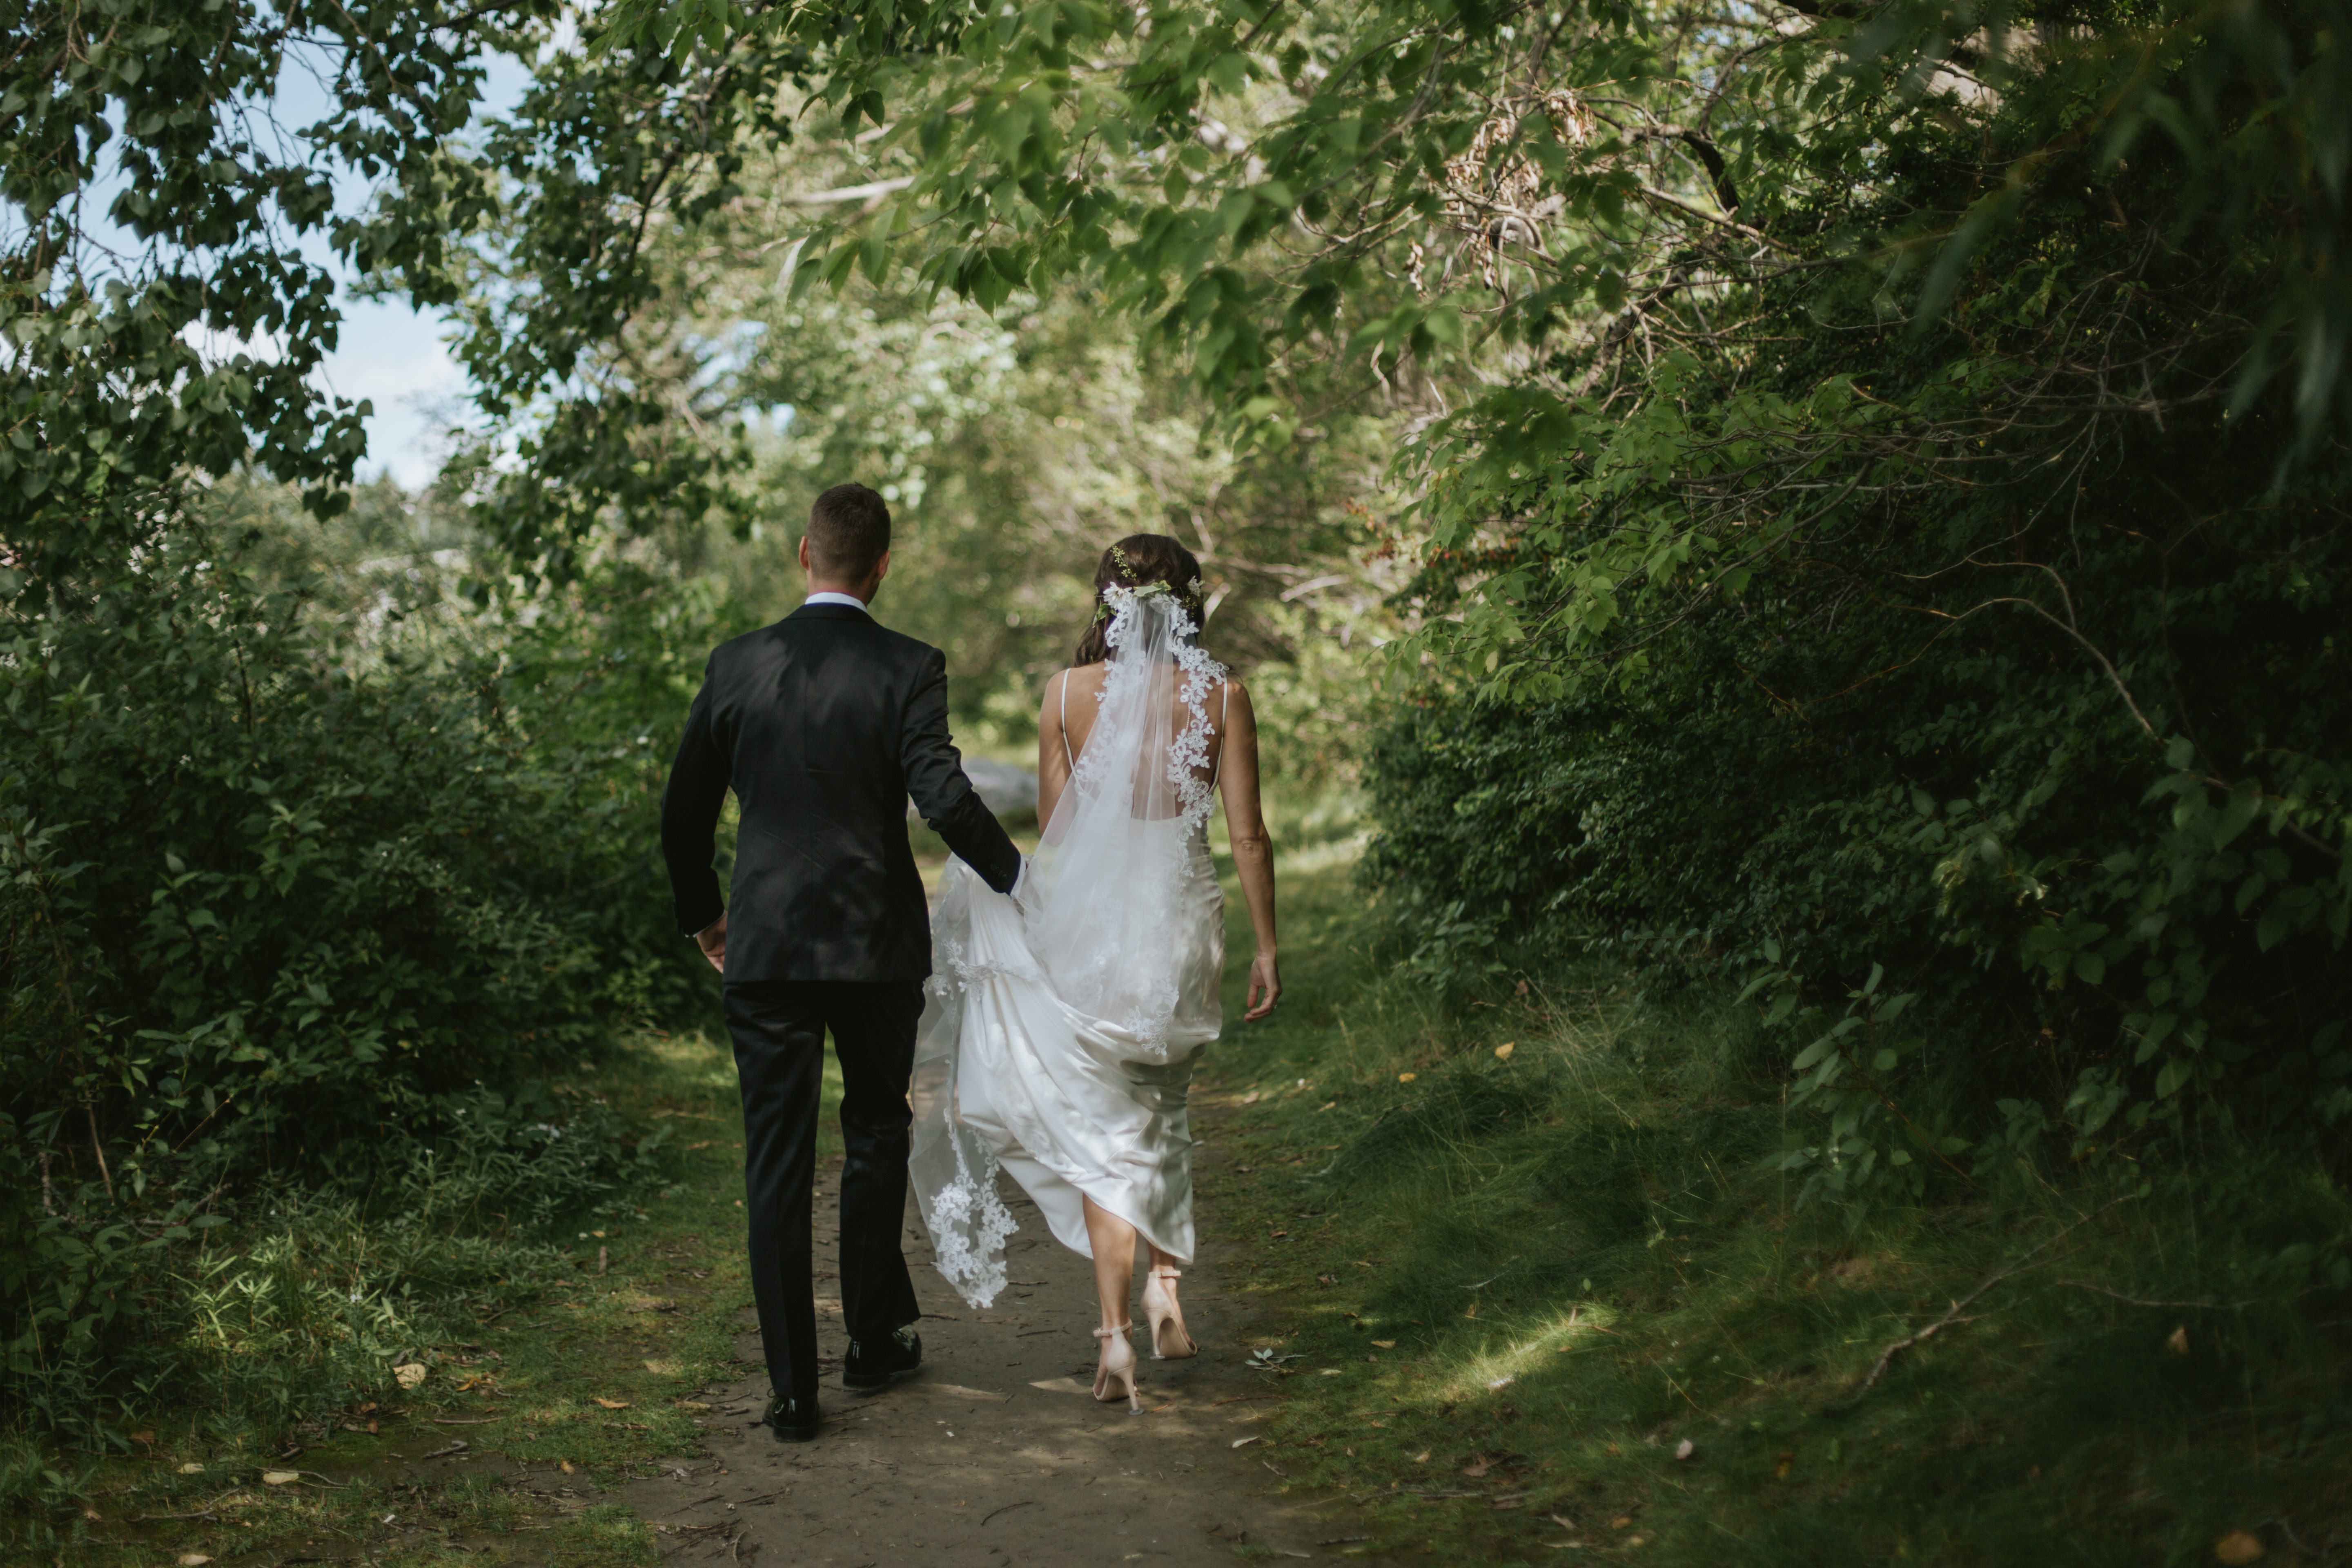 the bride and groom walk down a wooded path